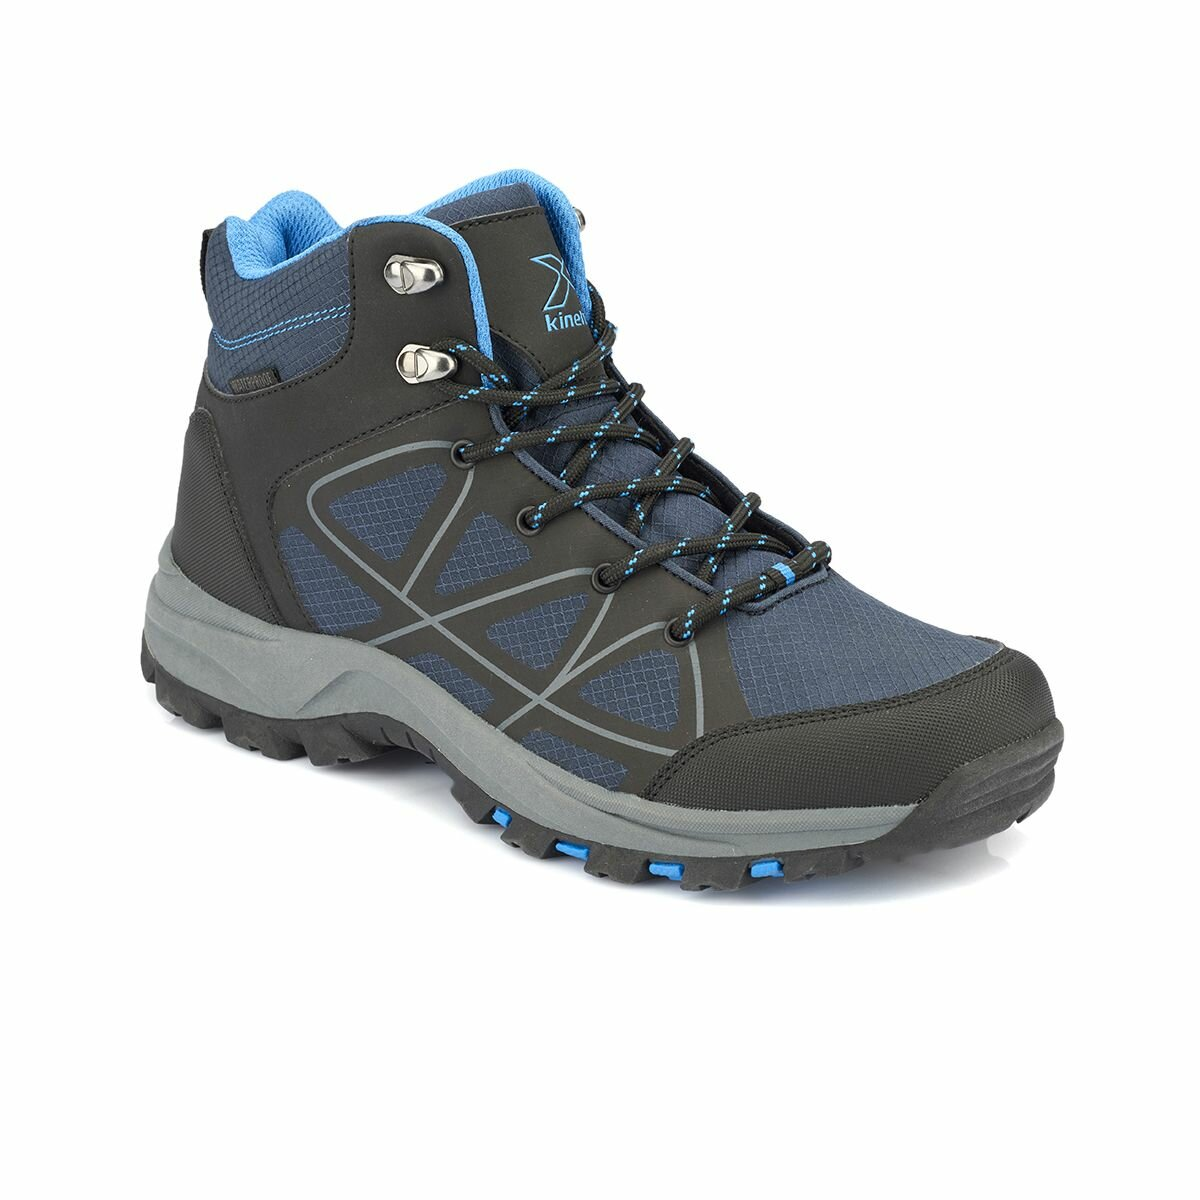 FLO PULSE HI WP Navy Blue Men 'S Trekking Shoes KINETIX